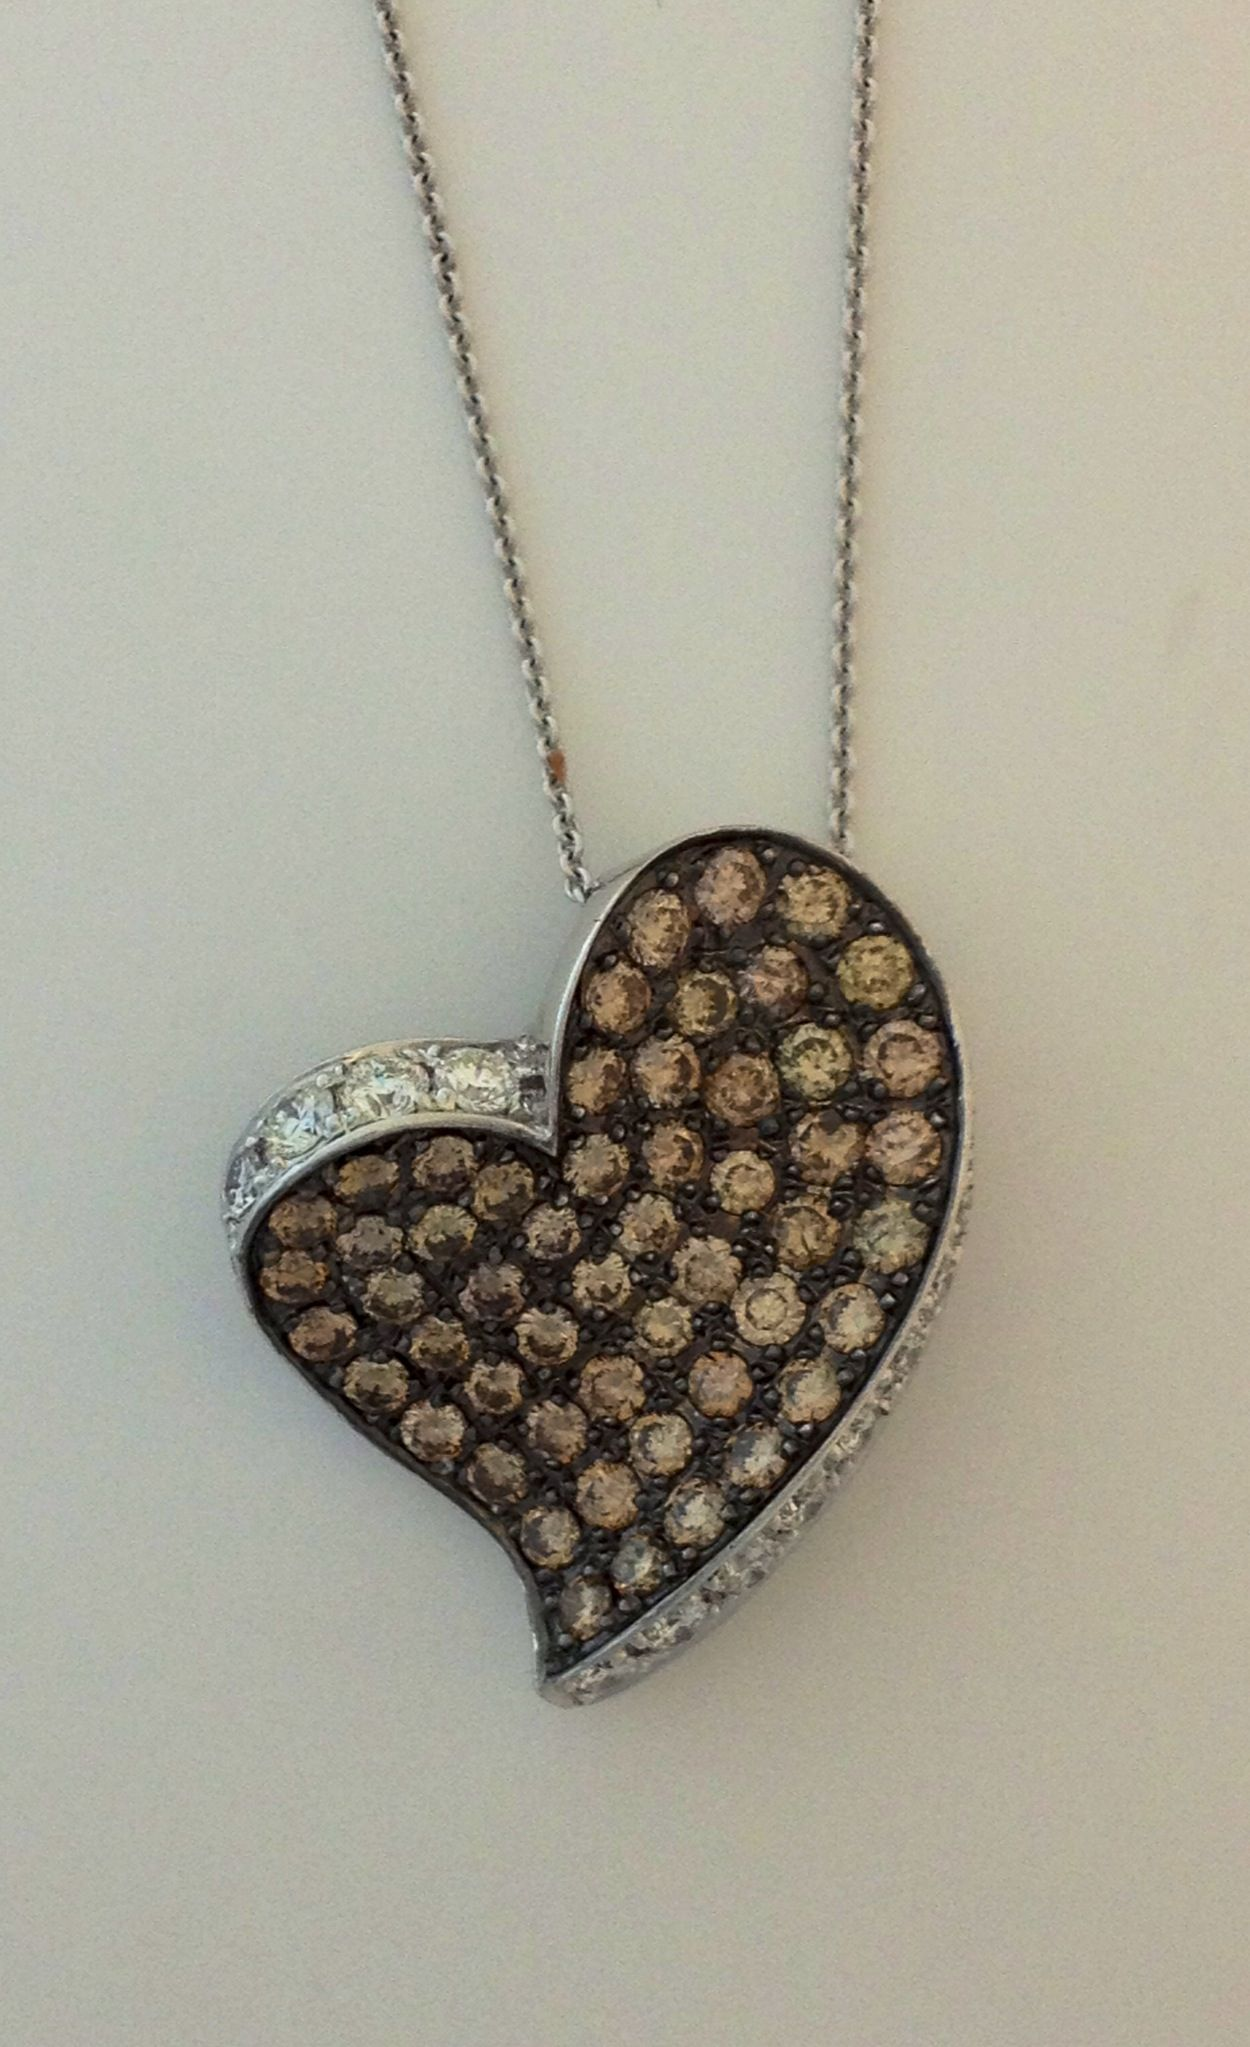 Floating Heart shaped Pendent decorated with 1.5 carats of Dazzling Coffee Colored Diamonds. Available at Anaheim Hills Jewelry & Coin.